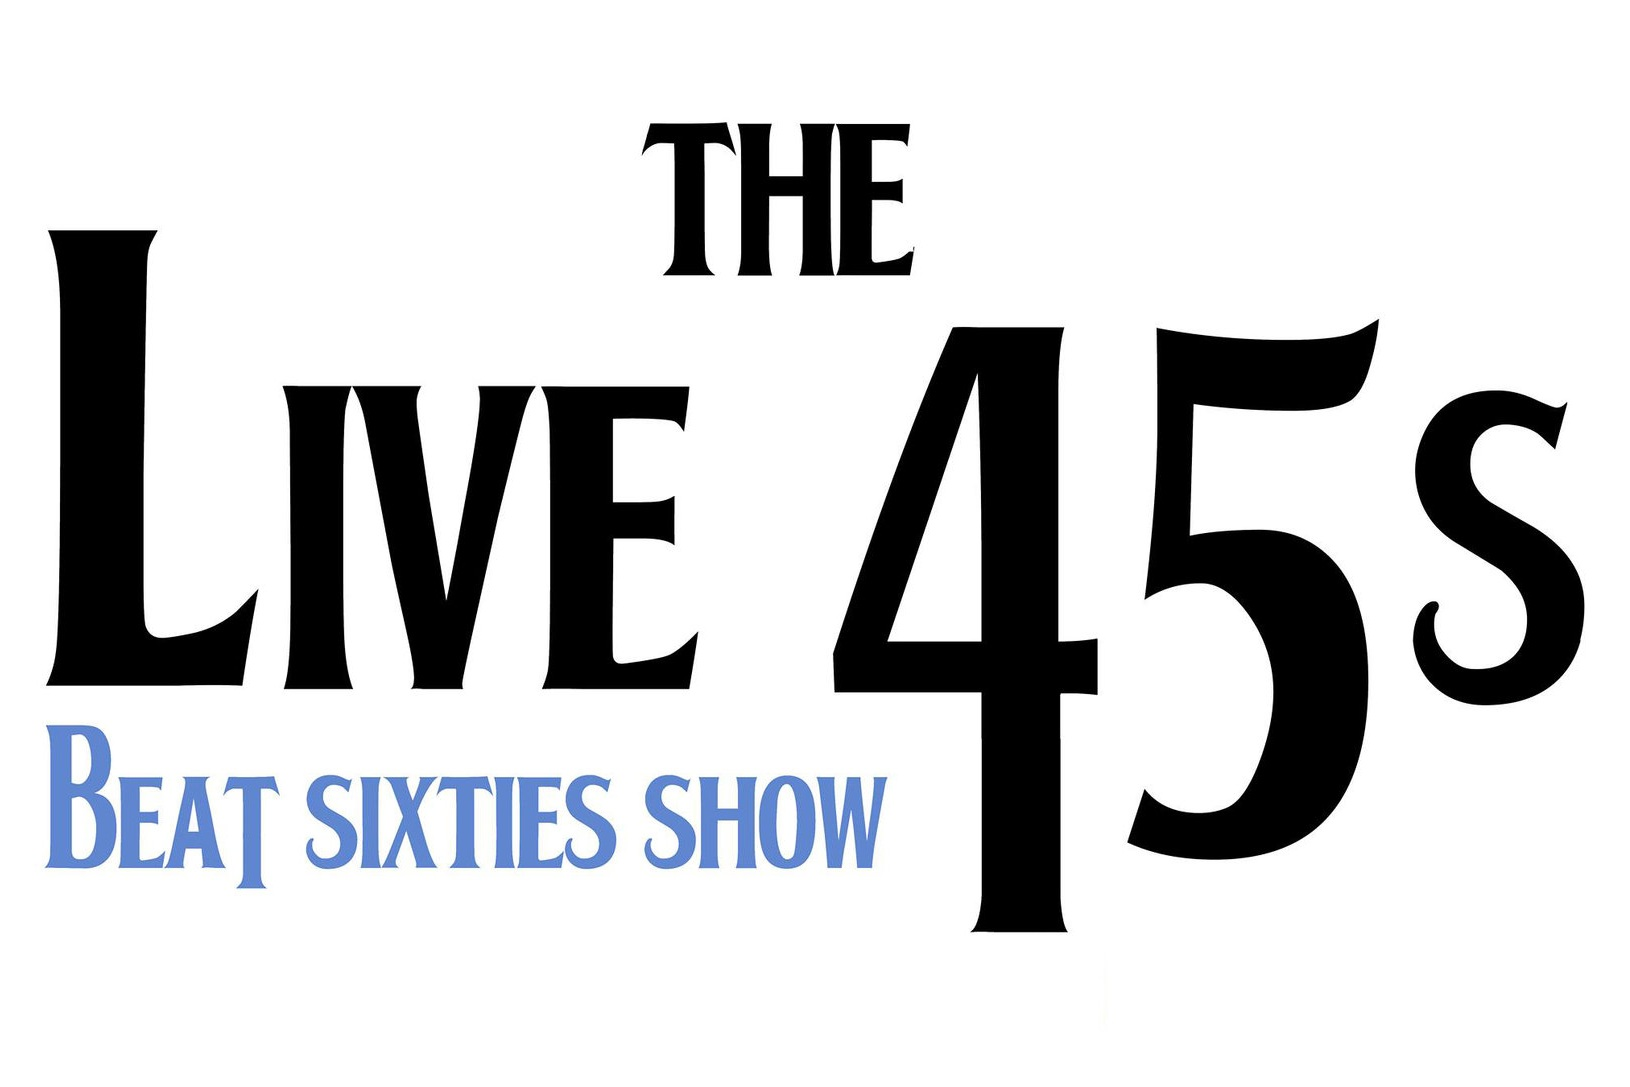 The Live 45s - itsthelive45s webpage linkThe Live 45s - John and Phil - will get you up dancing and singing along to those big beat hit 45rpm's of the 1960s. One frantic ukulele, one pounding bass, two voices...all coming together to make one BIG sound. Re-live the hits of The Beatles, Gerry and The Pacemakers, The Searchers and many more with The Live 45s.